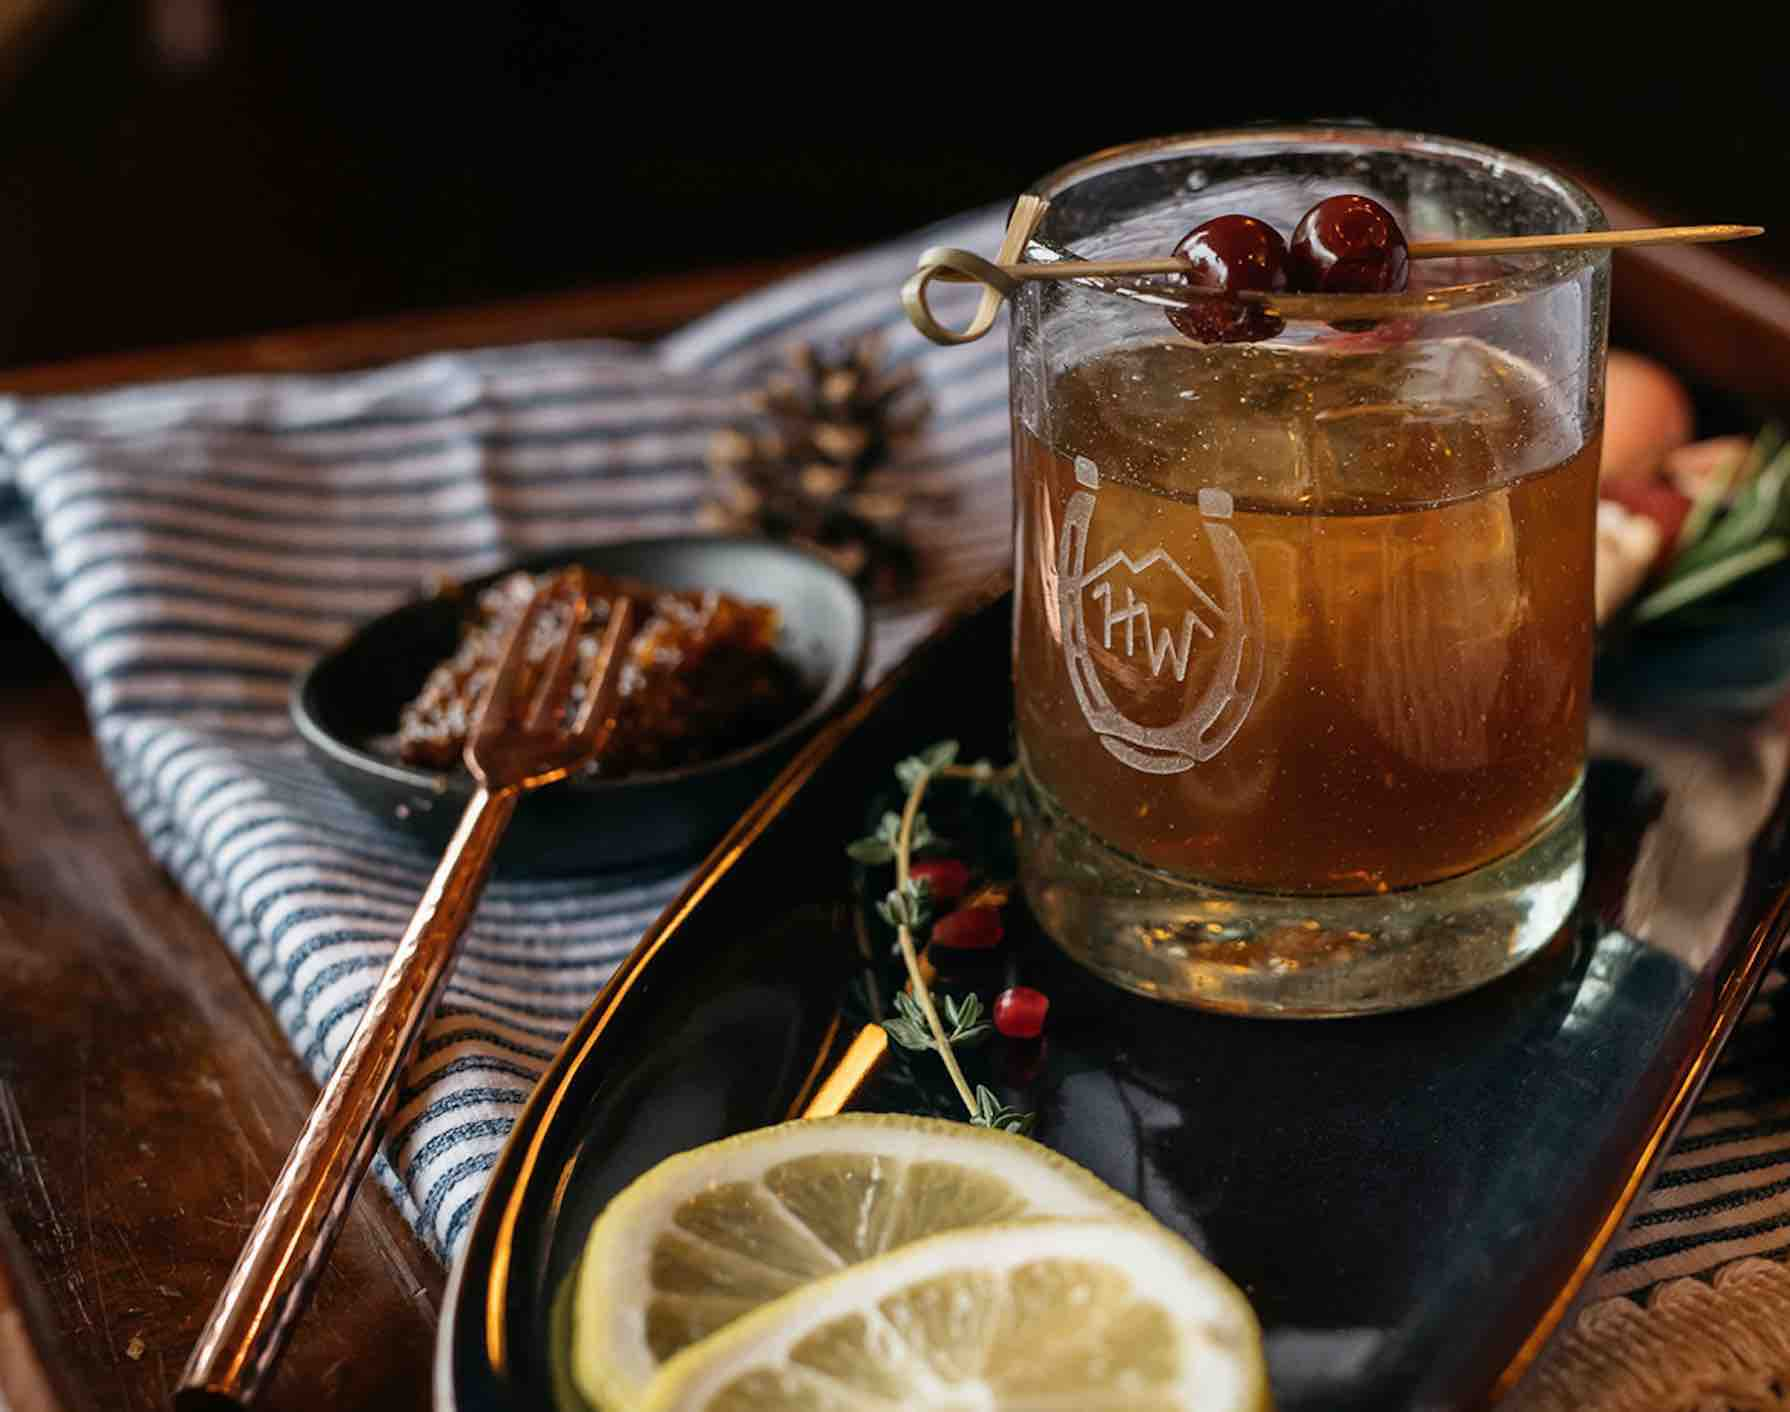 Angel Of Tombstone Is A Delicious And Extremely Effective Whiskey Cocktail To Enjoy The Last Days of Summer